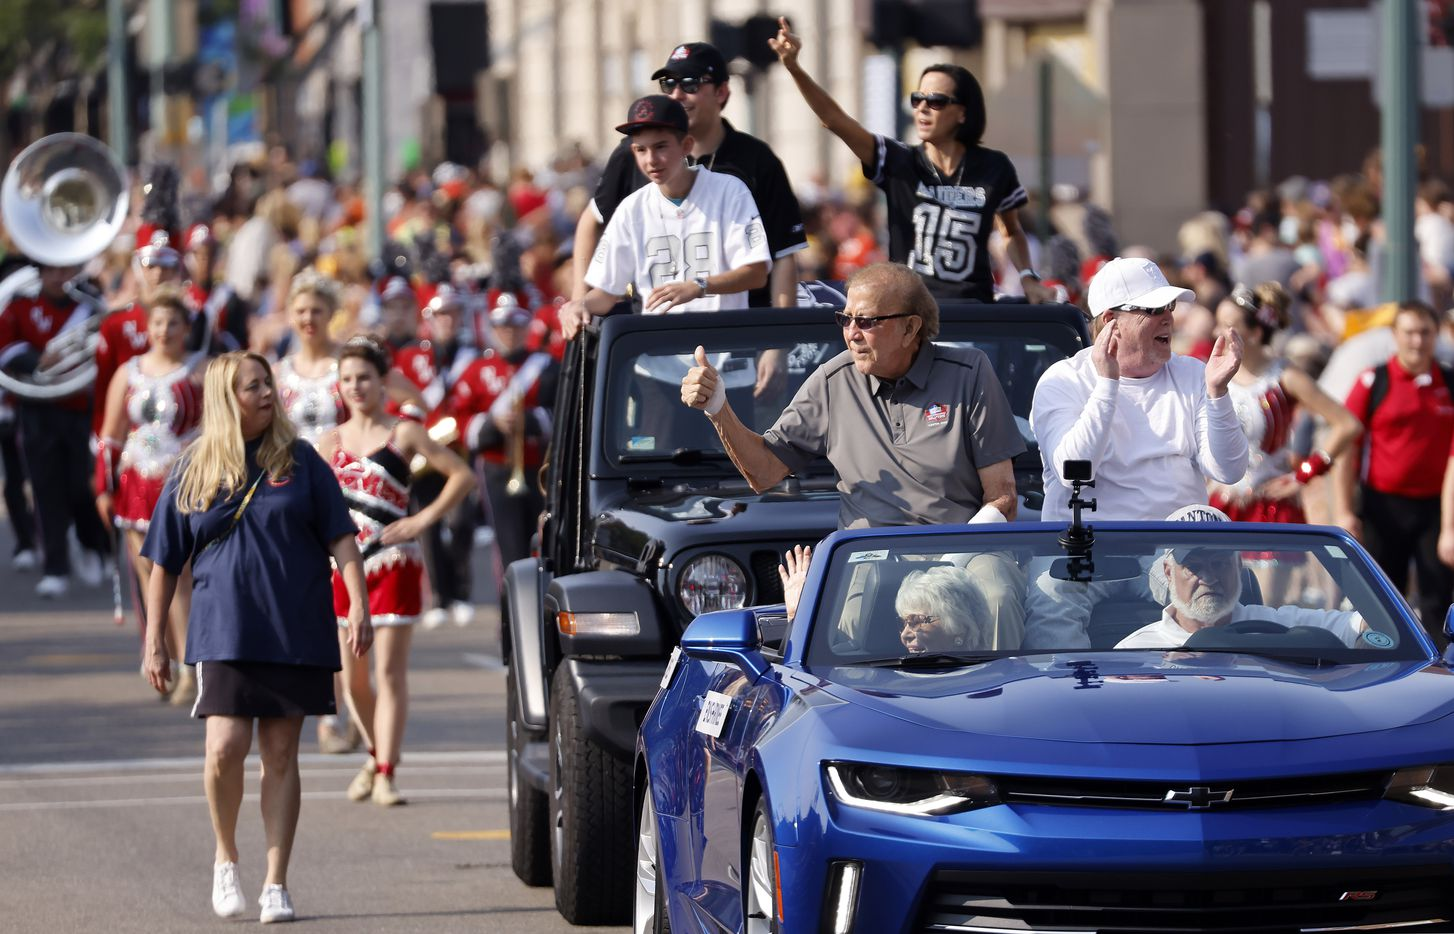 Oakland Raiders coach and Pro Football Hall of Fame inductee Tom Flores gives a thumbs up to fans as he rides in the Canton Repository Grand Parade in downtown Canton, Ohio, Saturday, August 7, 2021. The parade honored newly elected and former members of the Hall. (Tom Fox/The Dallas Morning News)